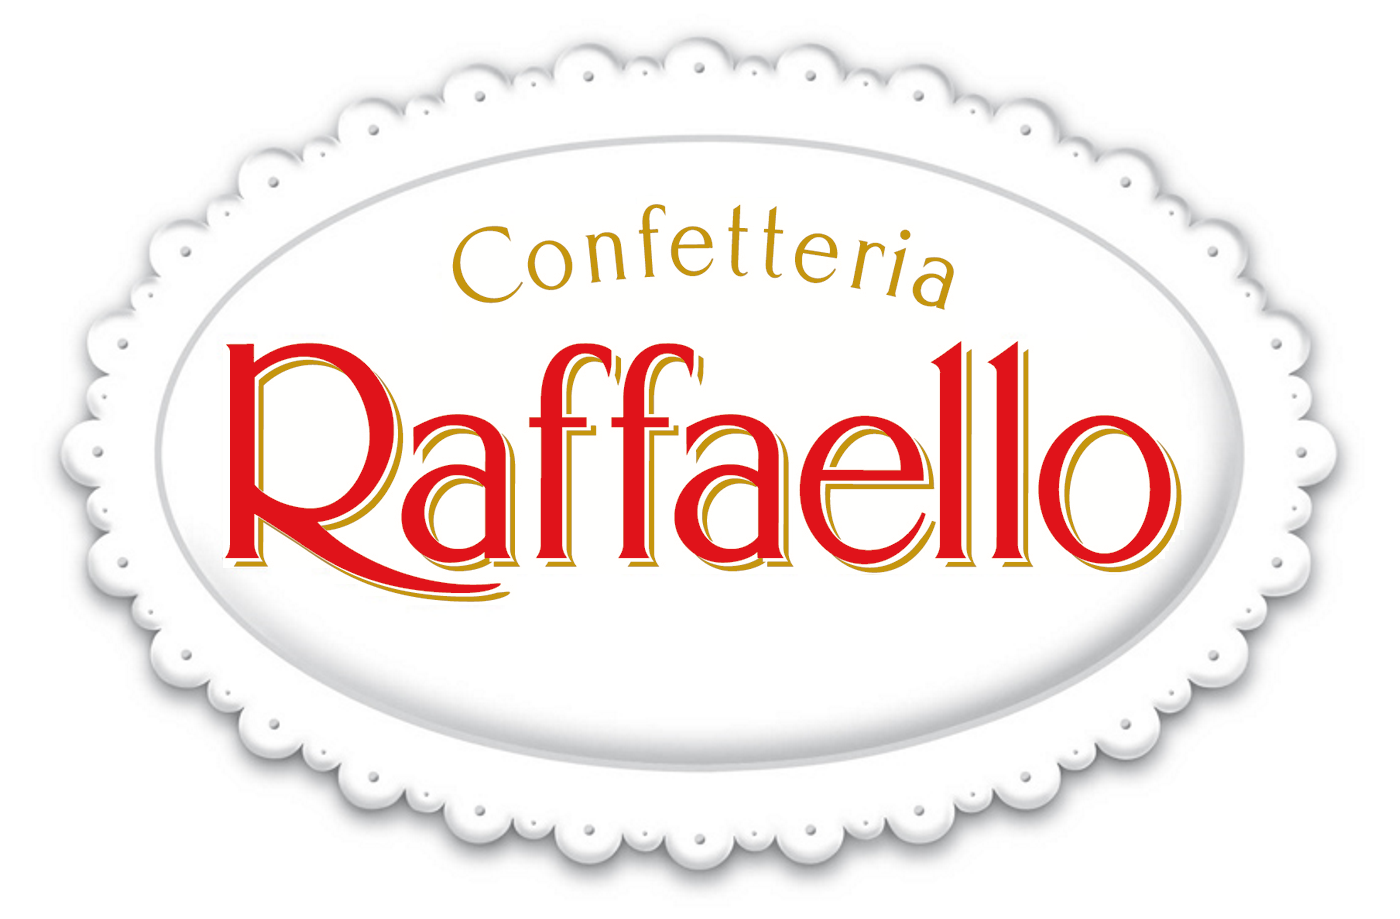 raffaello logos download jewellery clipart jewelry clipart excited